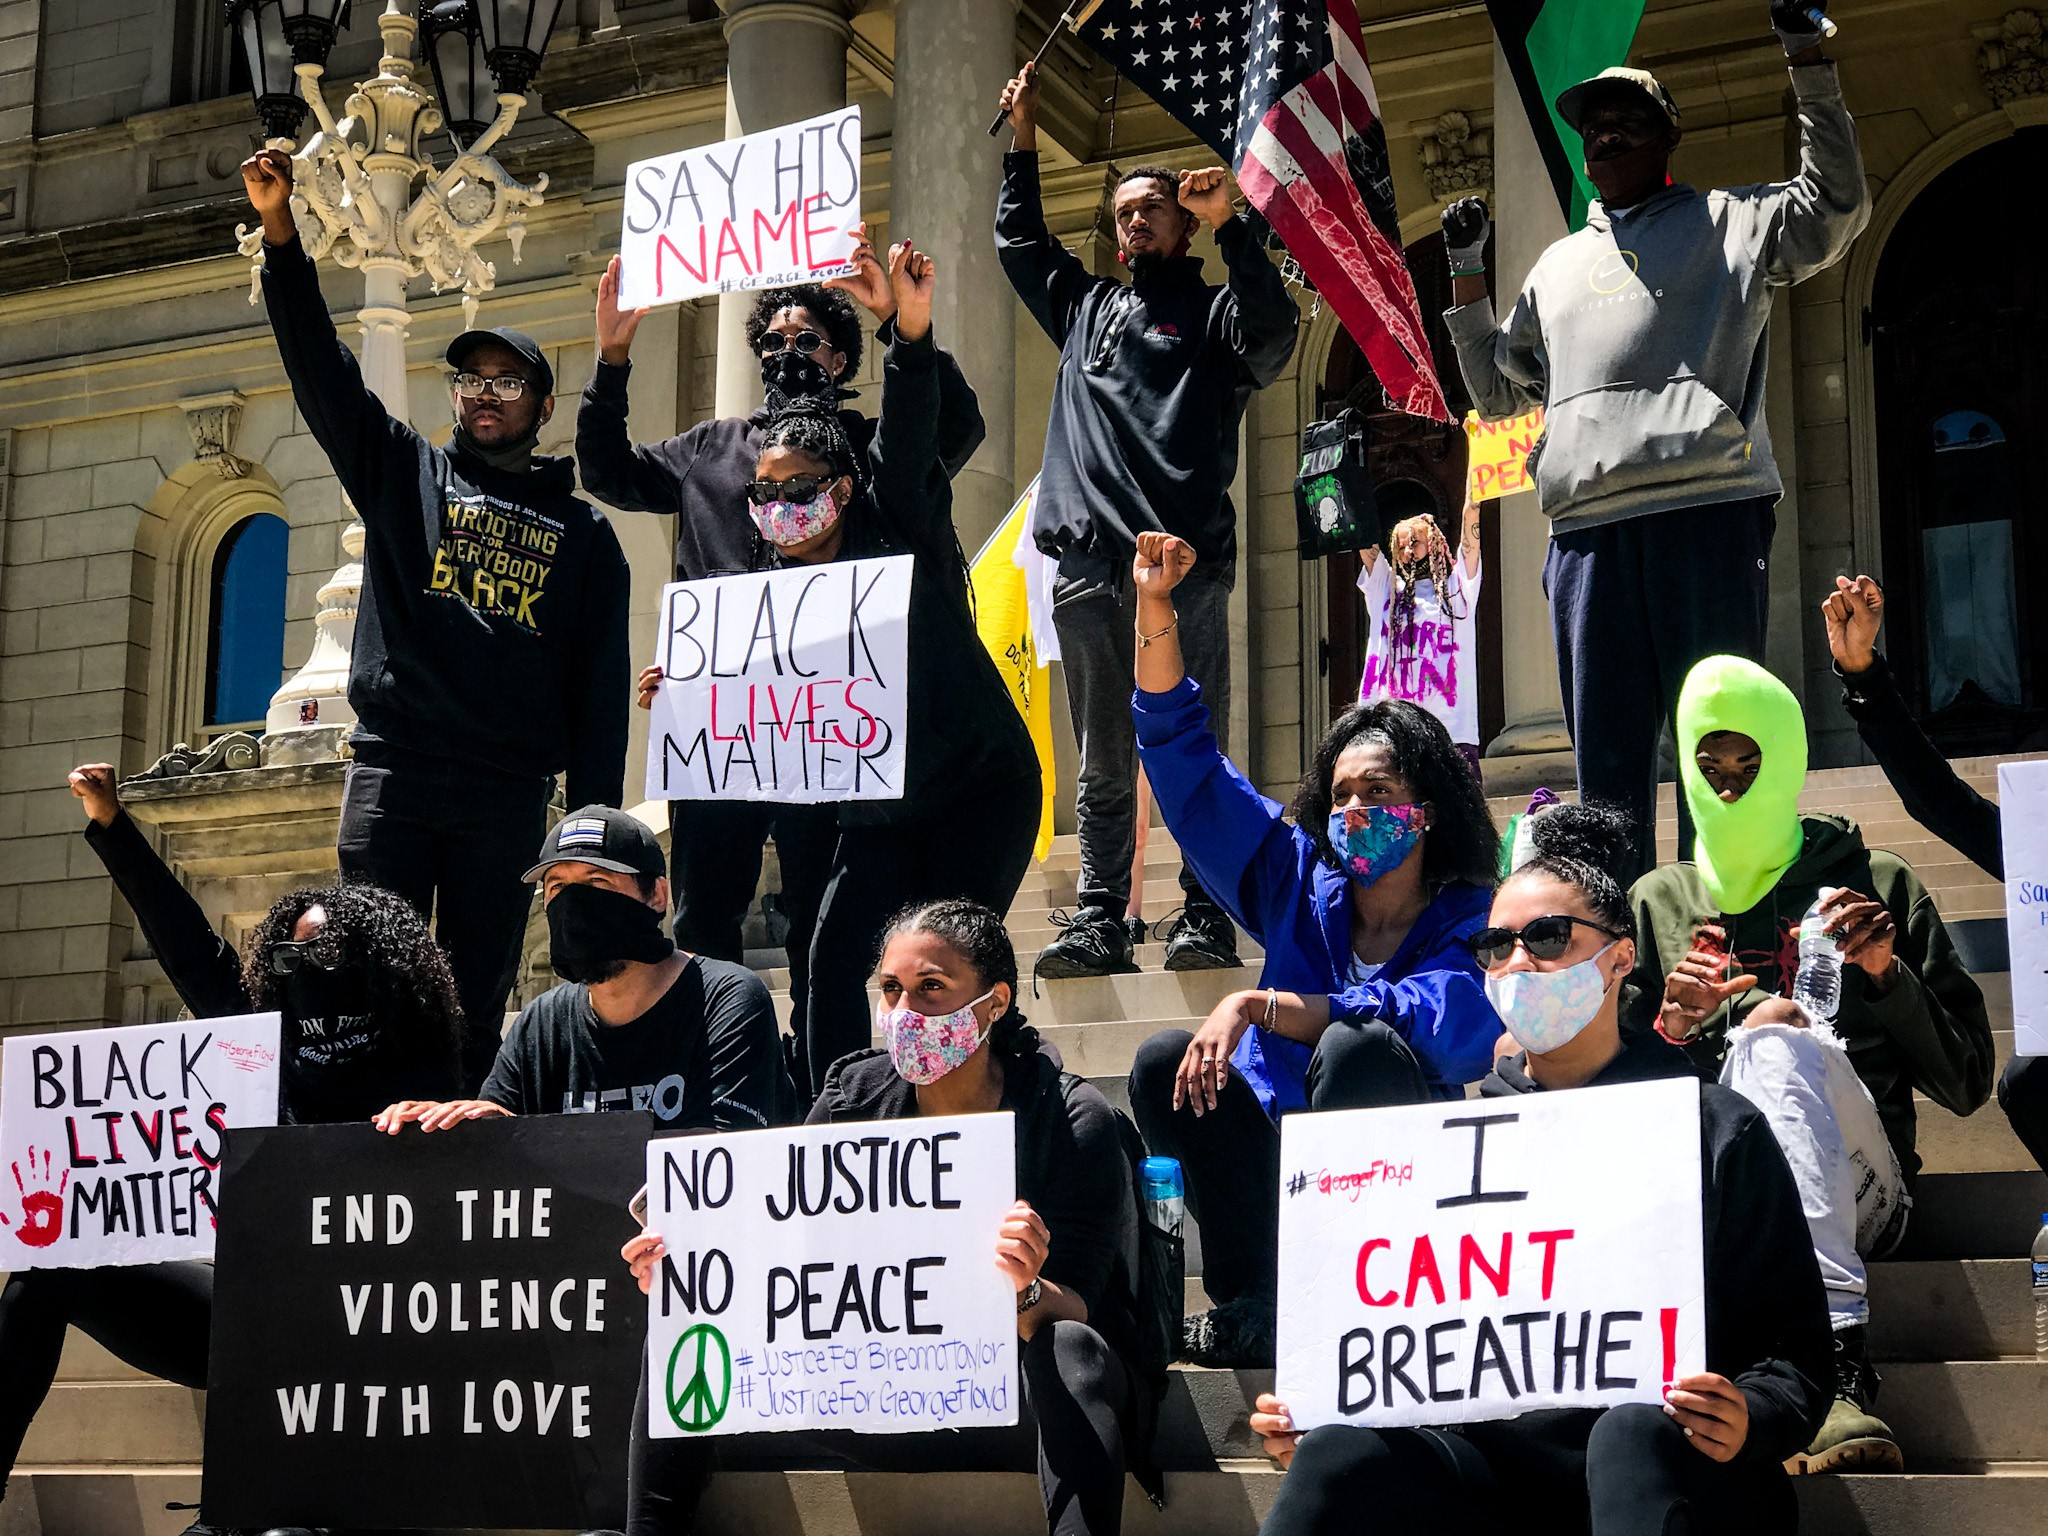 On Sunday, May 31, 2020 people gathered in Lansing to protest the death of George Floyd. This image was captured while the protest was peaceful. (WWMT/Mikenzie Frost)